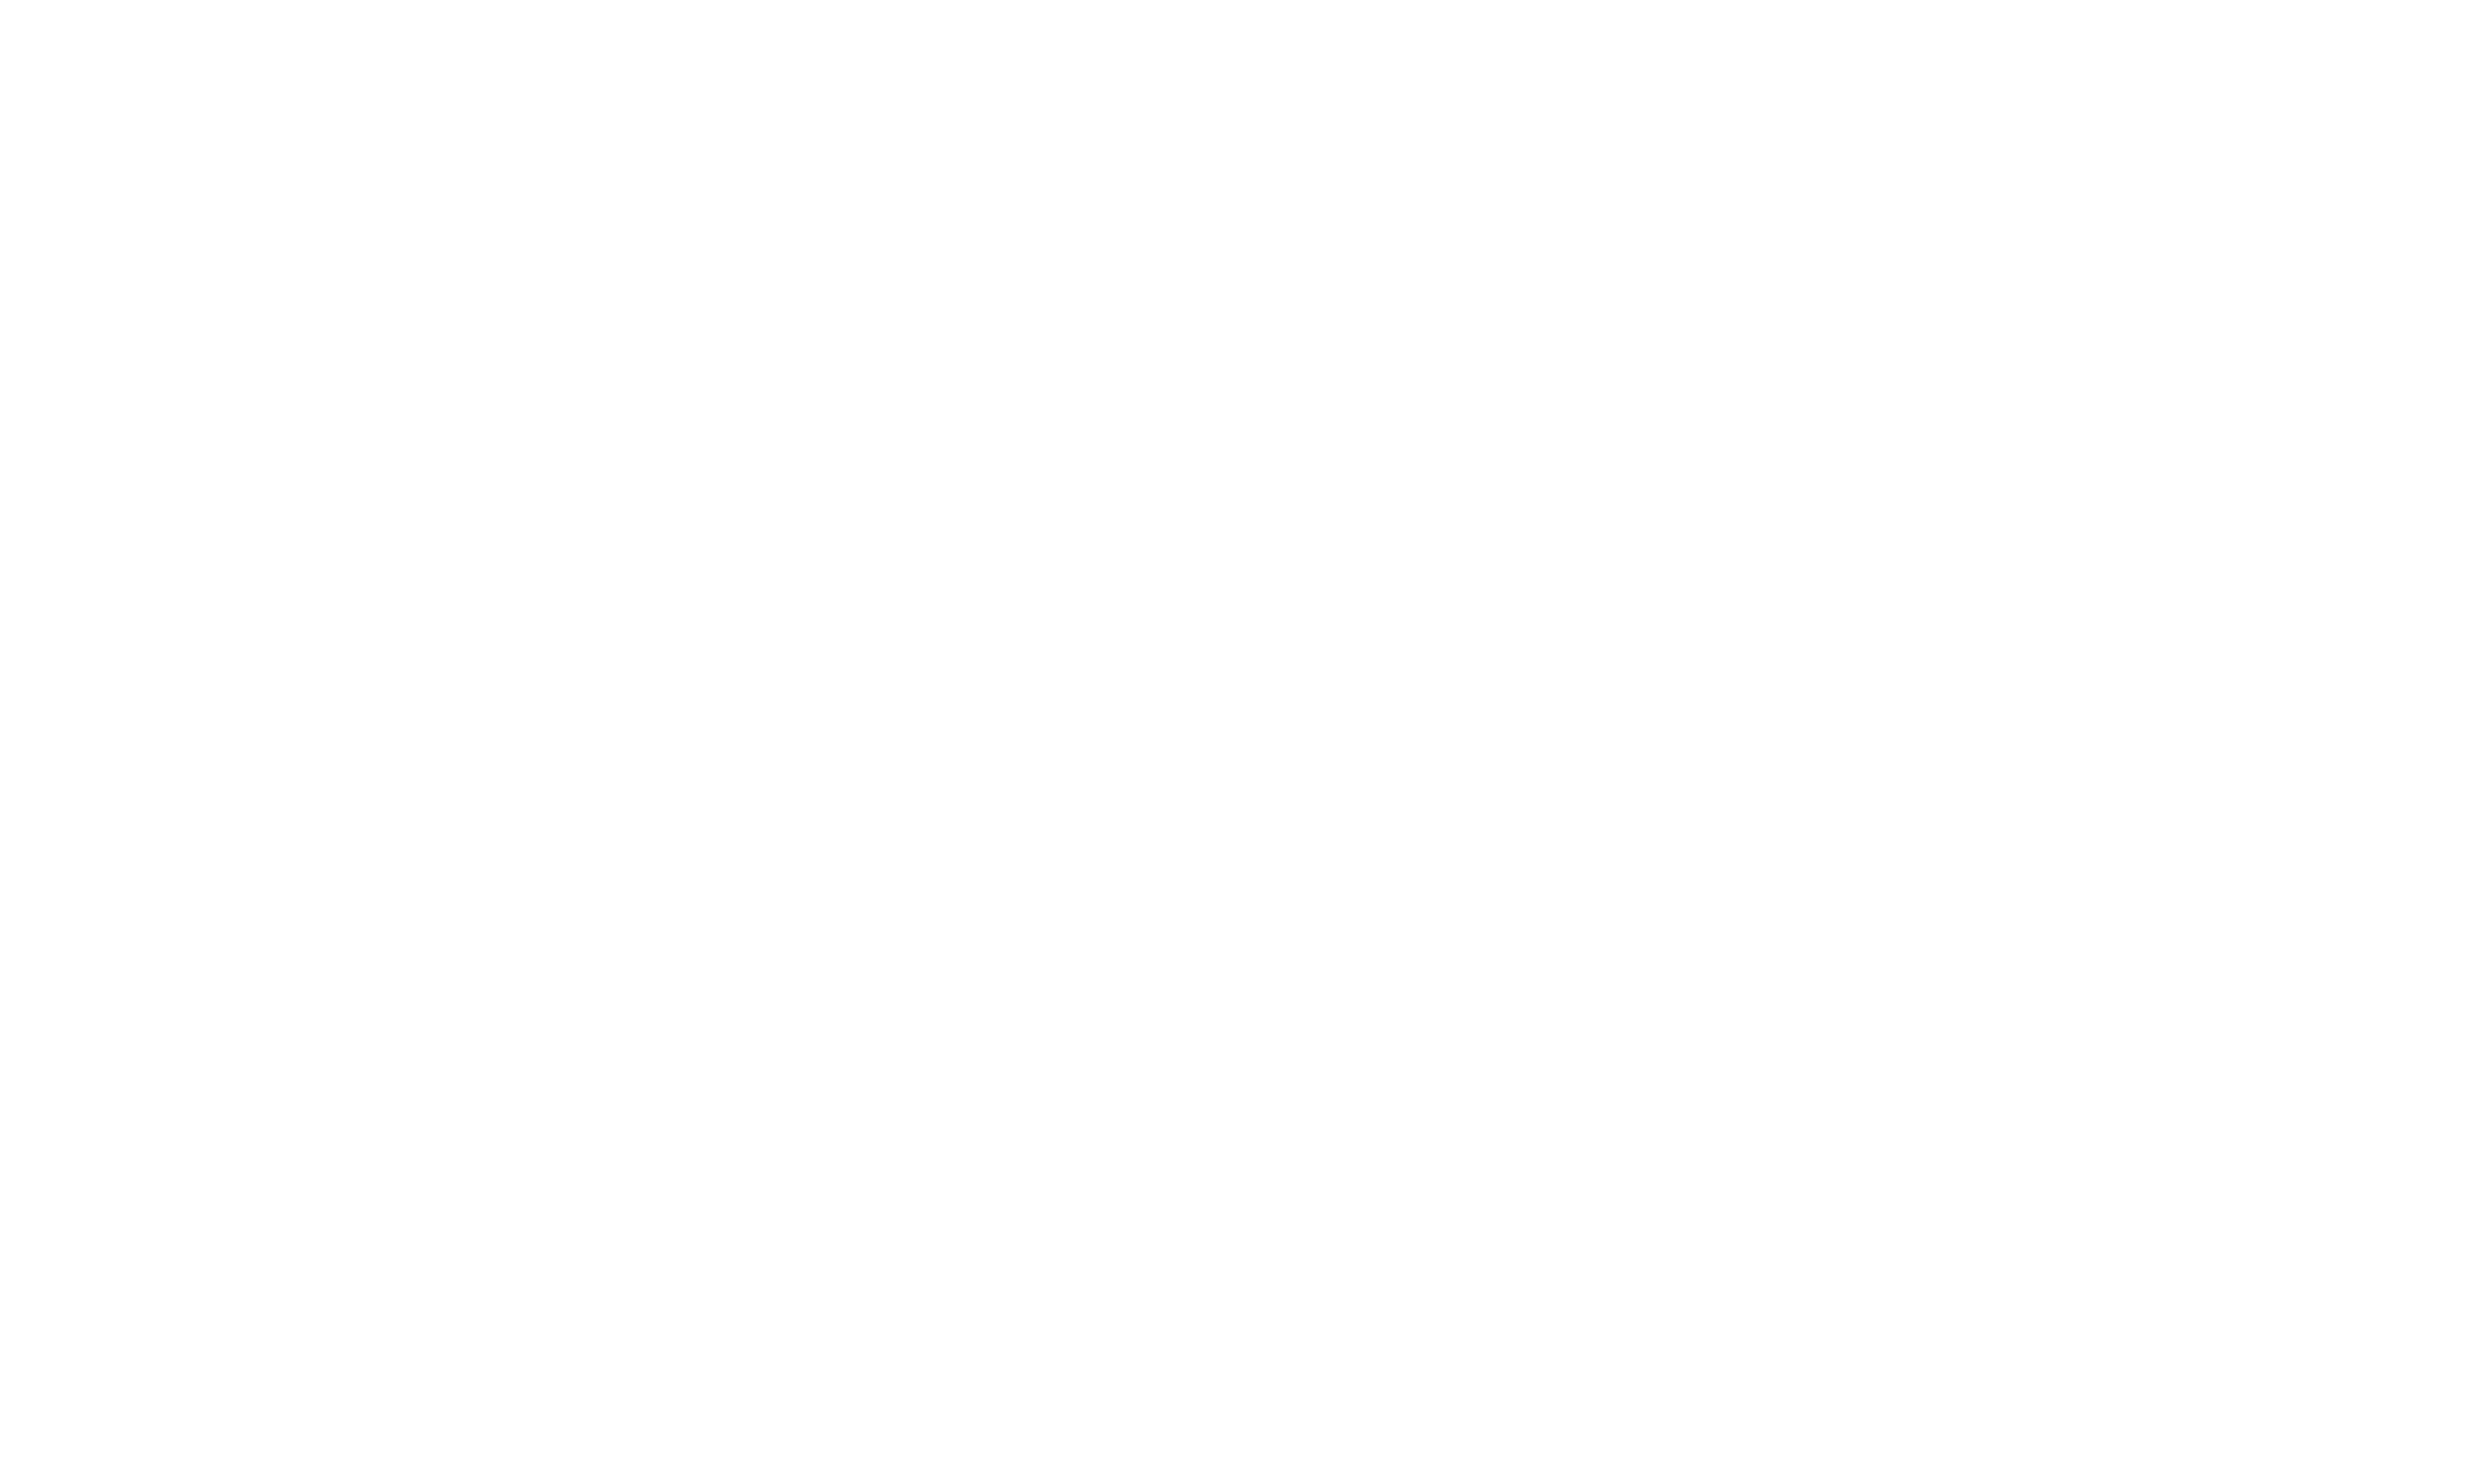 Poyked